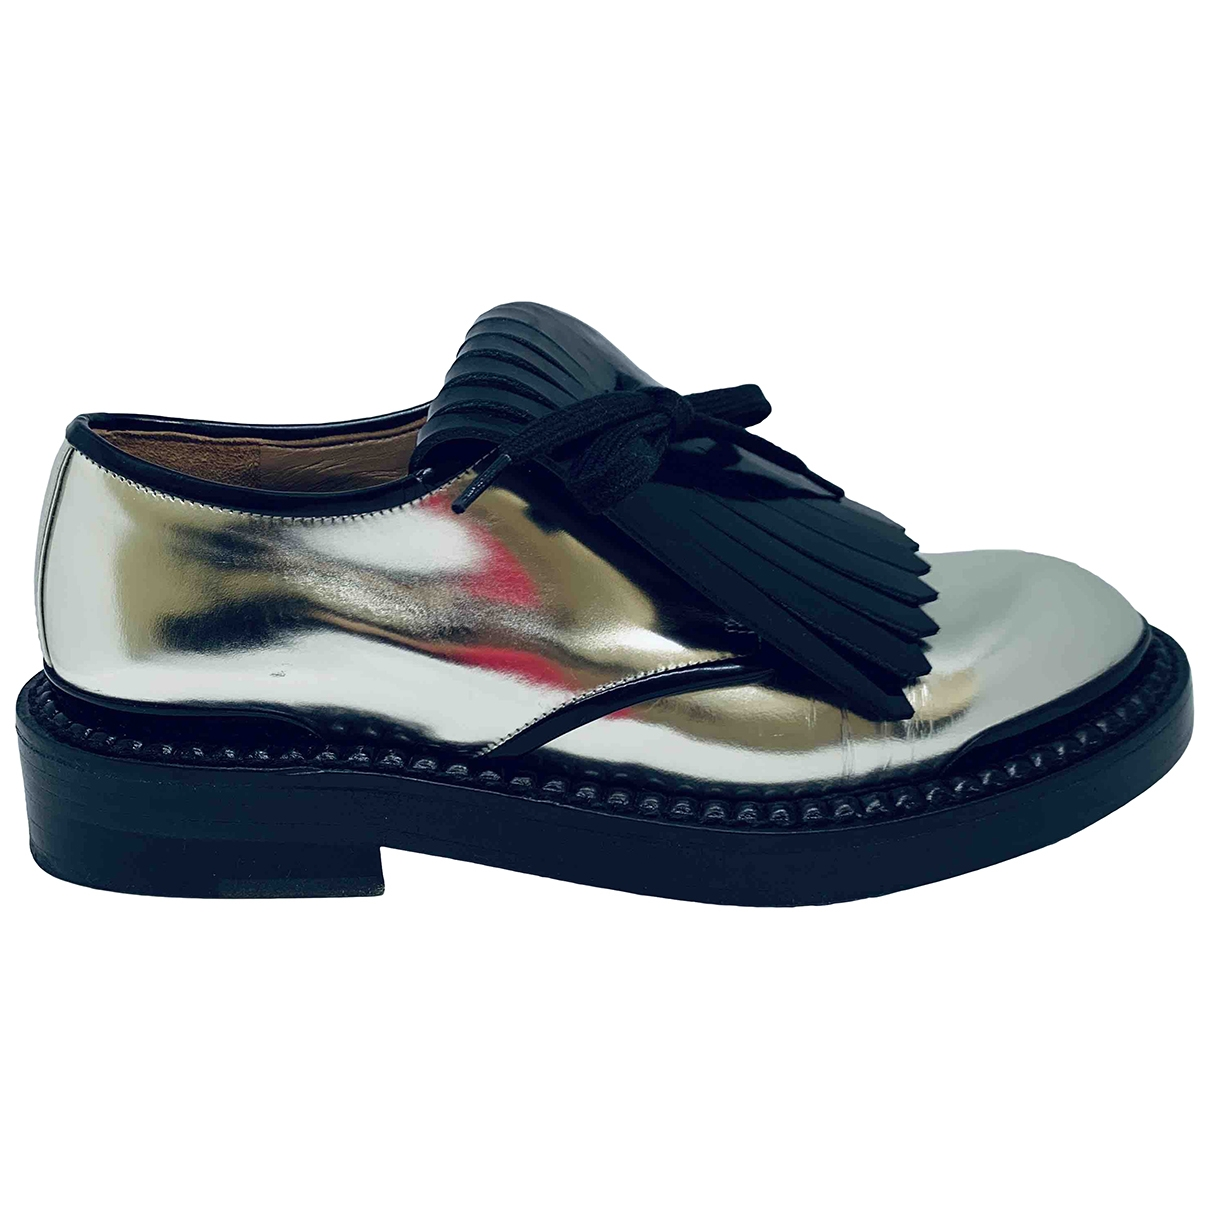 Marni \N Silver Patent leather Lace ups for Women 35 EU